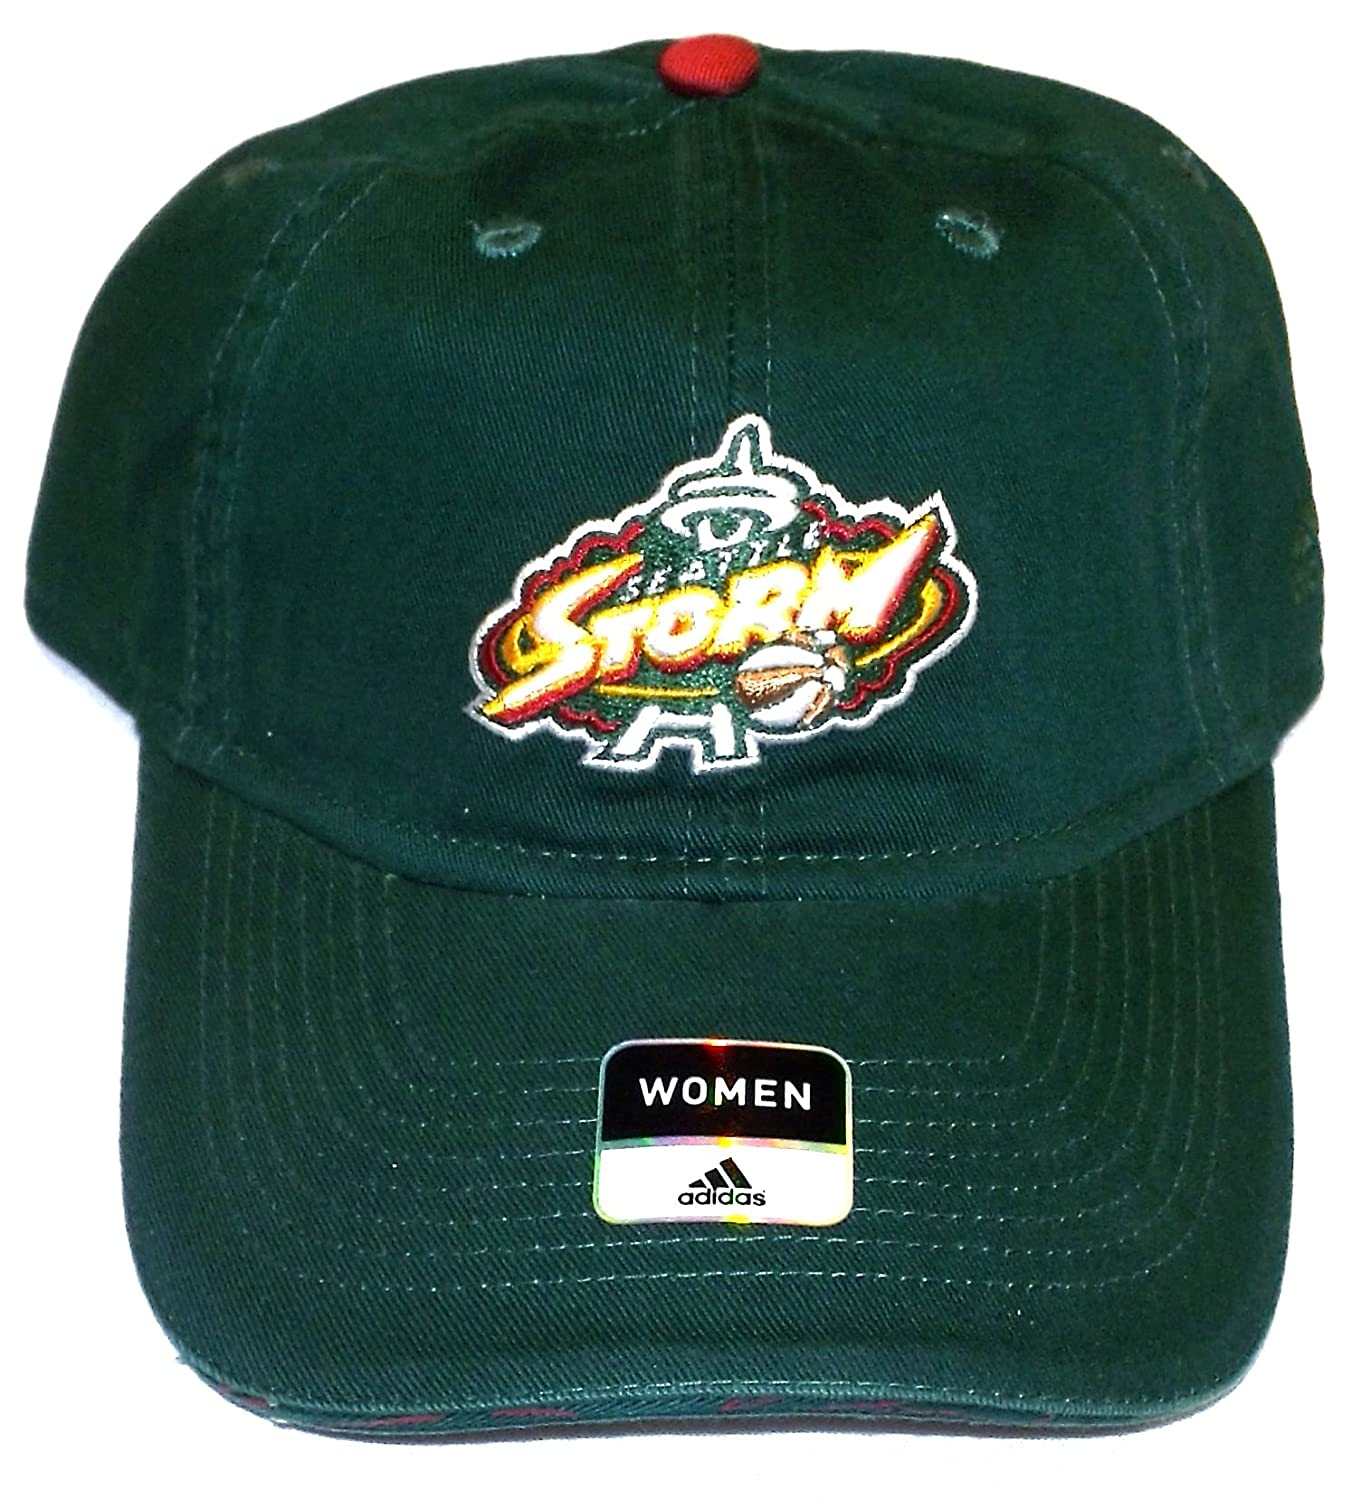 Womens Adjustable Seattle Storm Hat